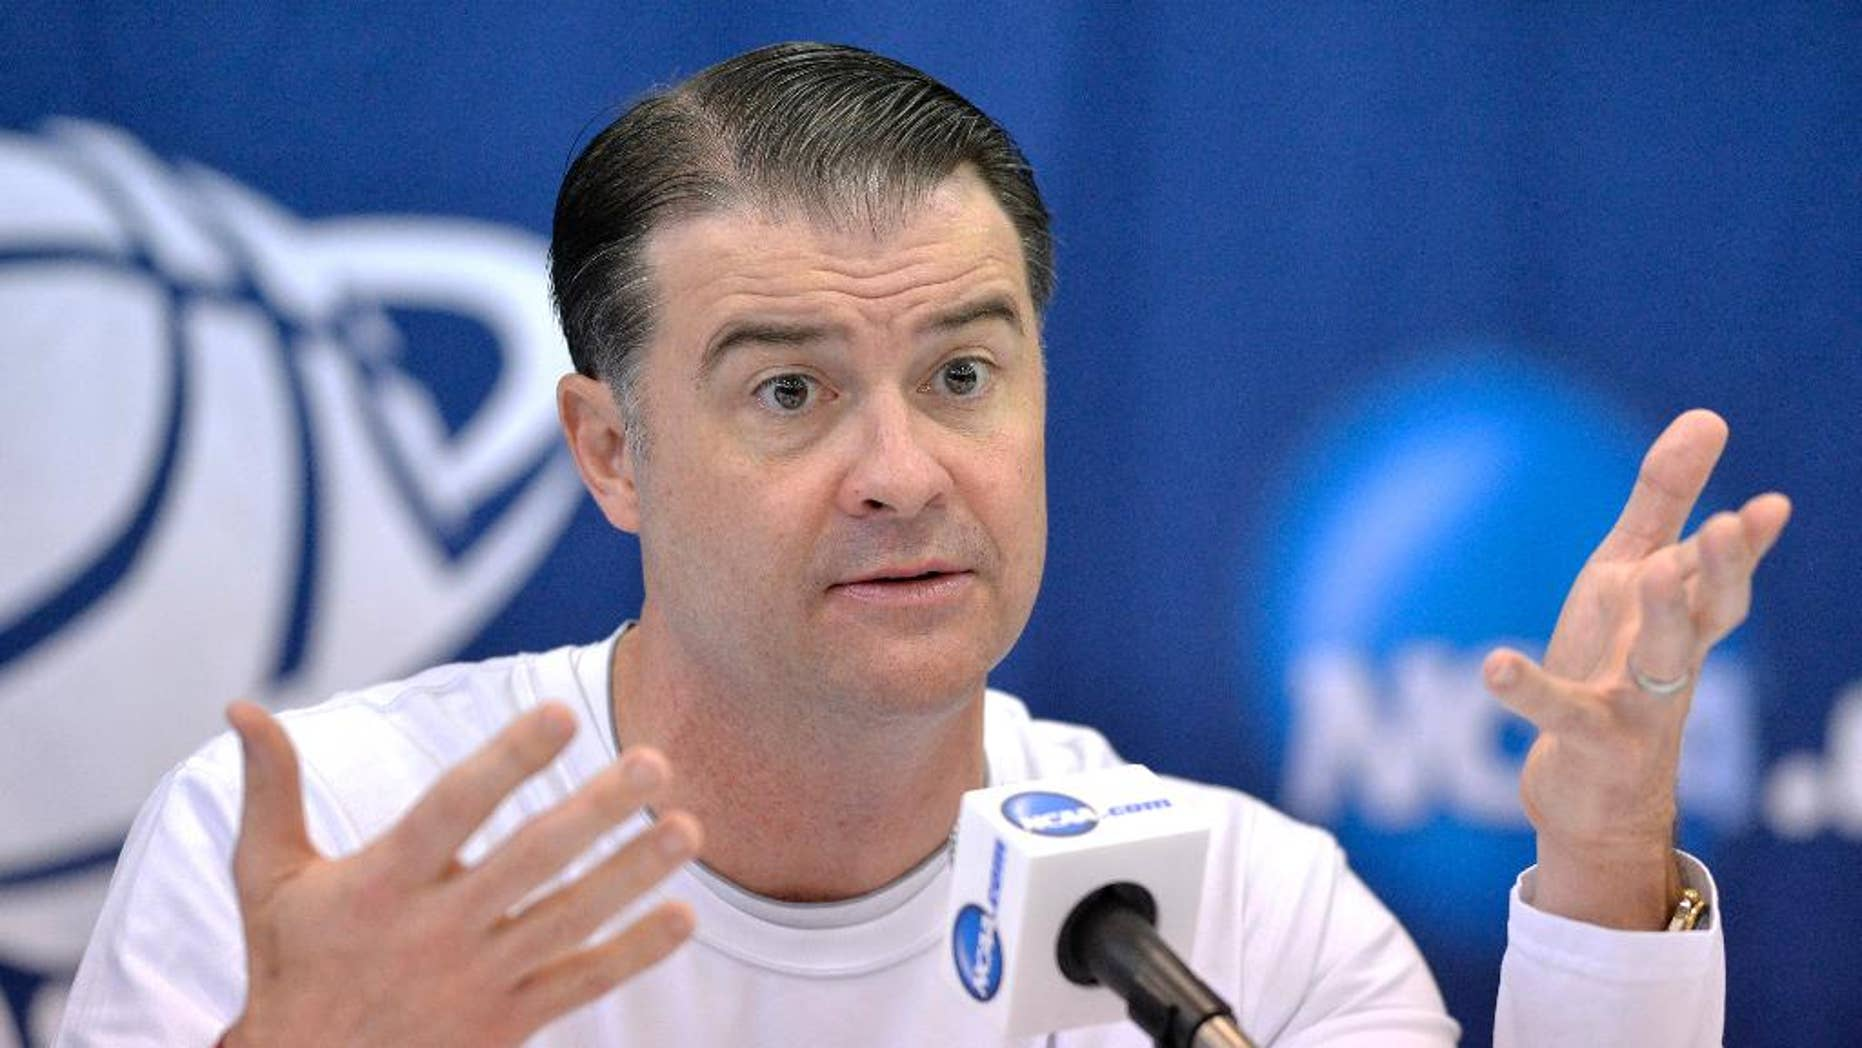 FILE - In this March 23, 2014, file photo, Kentucky head coach Matthew Mitchell answers questions at a news conference for the NCAA women's college basketball tournament in Lexington, Ky. Mitchell begins the season cautioning against expecting too much initially from a Wildcats team that lost forwards DeNesha Stallworth and Samarie Walker. (AP Photo/Timothy D. Easley, File)